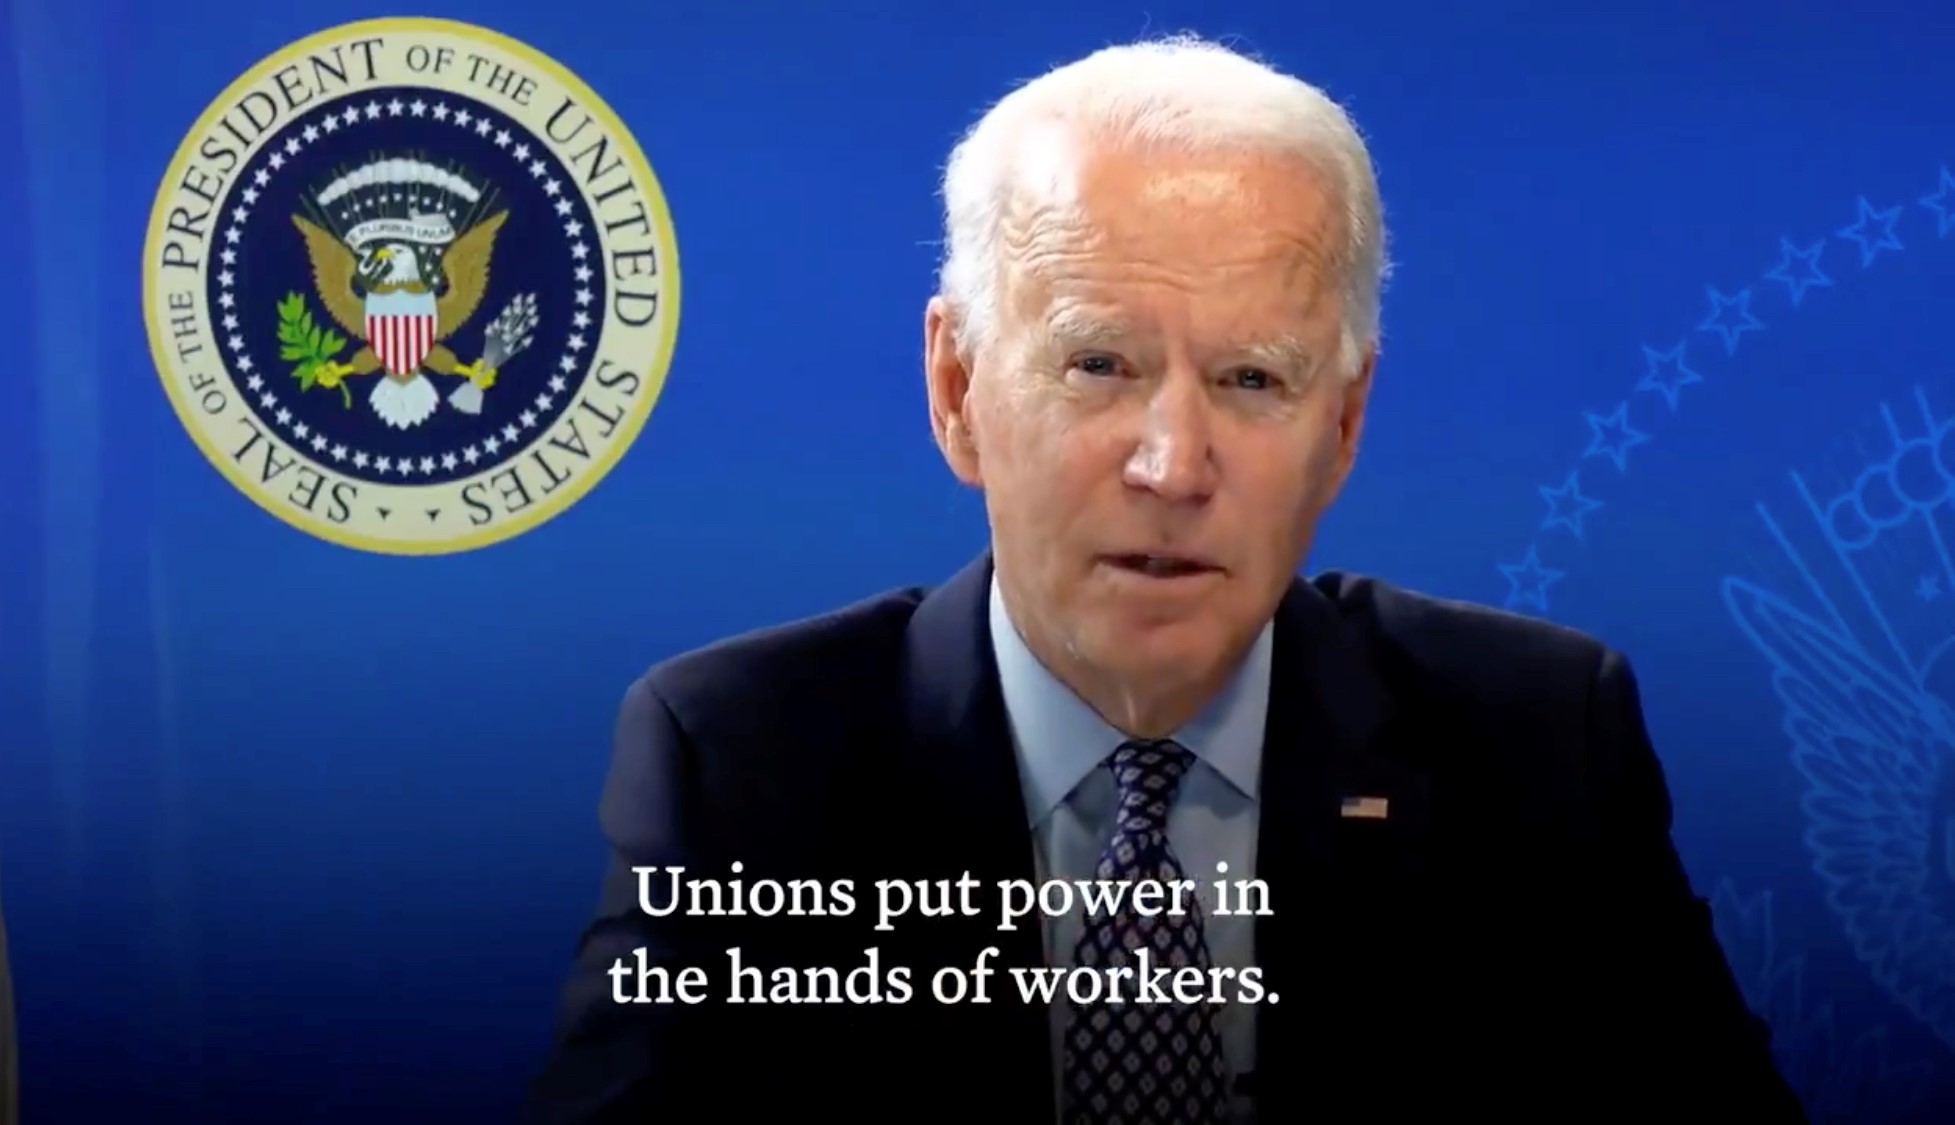 Biden Puts Presidential Support Behind Unions, Alabama Amazon Workers